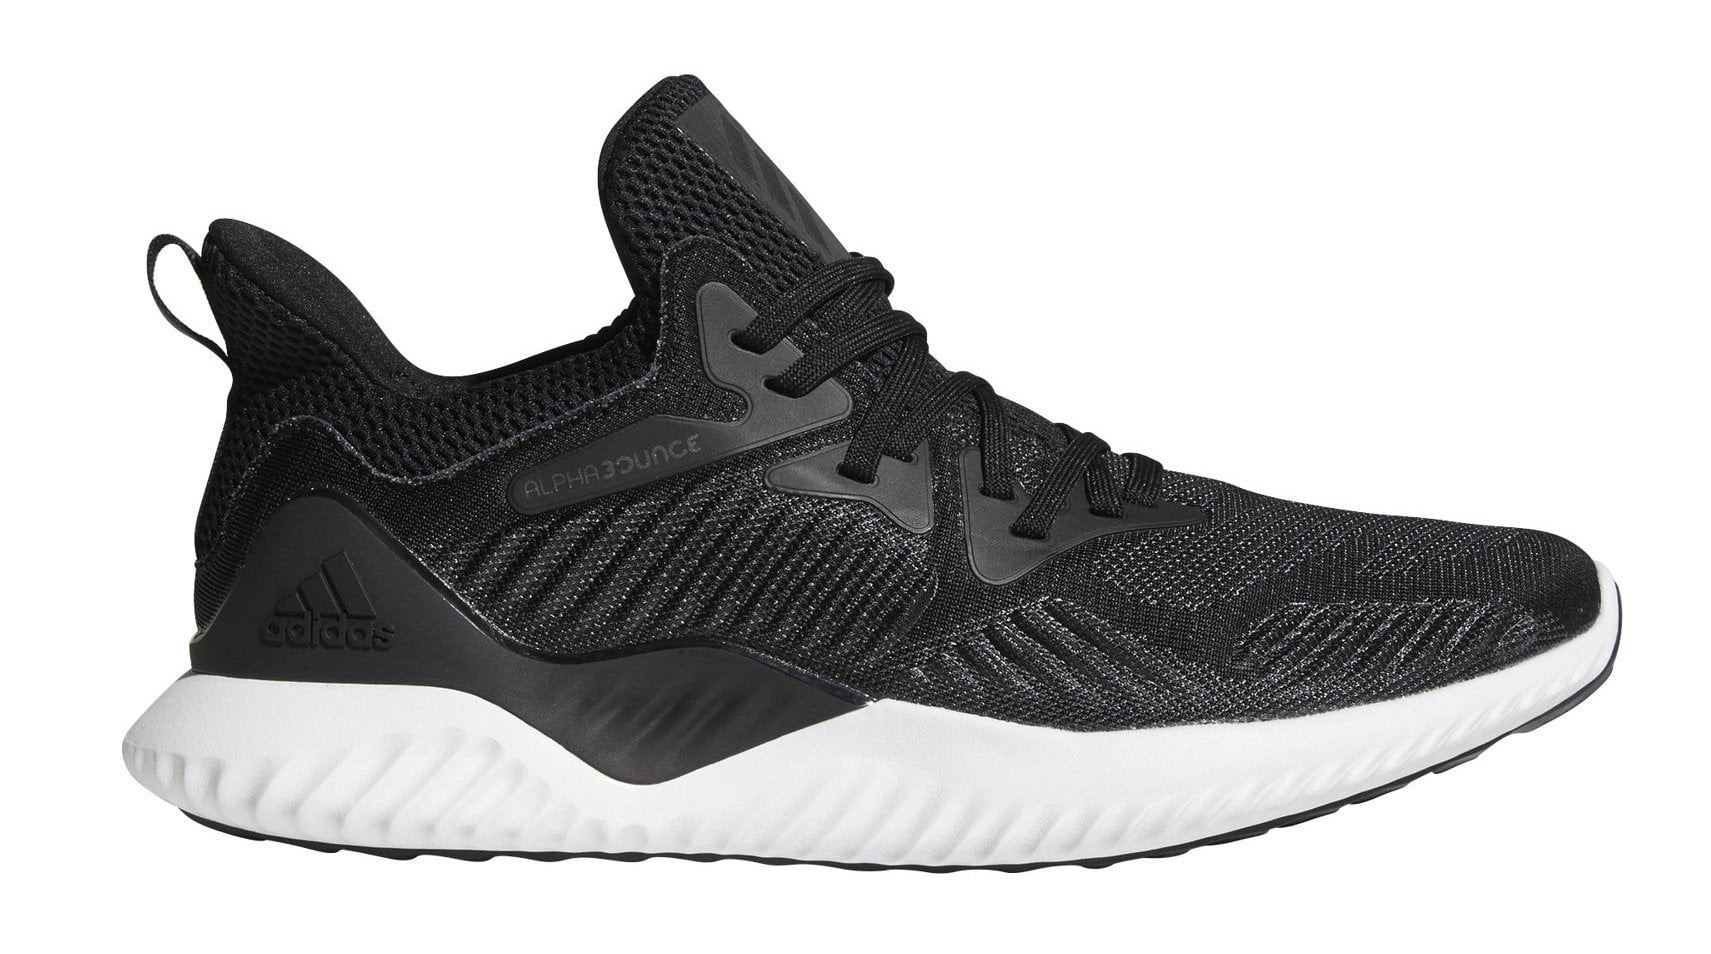 fc2e127f5bc3b ADIDAS MEN S ALPHABOUNCE BEYOND BLACK WITE SHOES – INSPORT